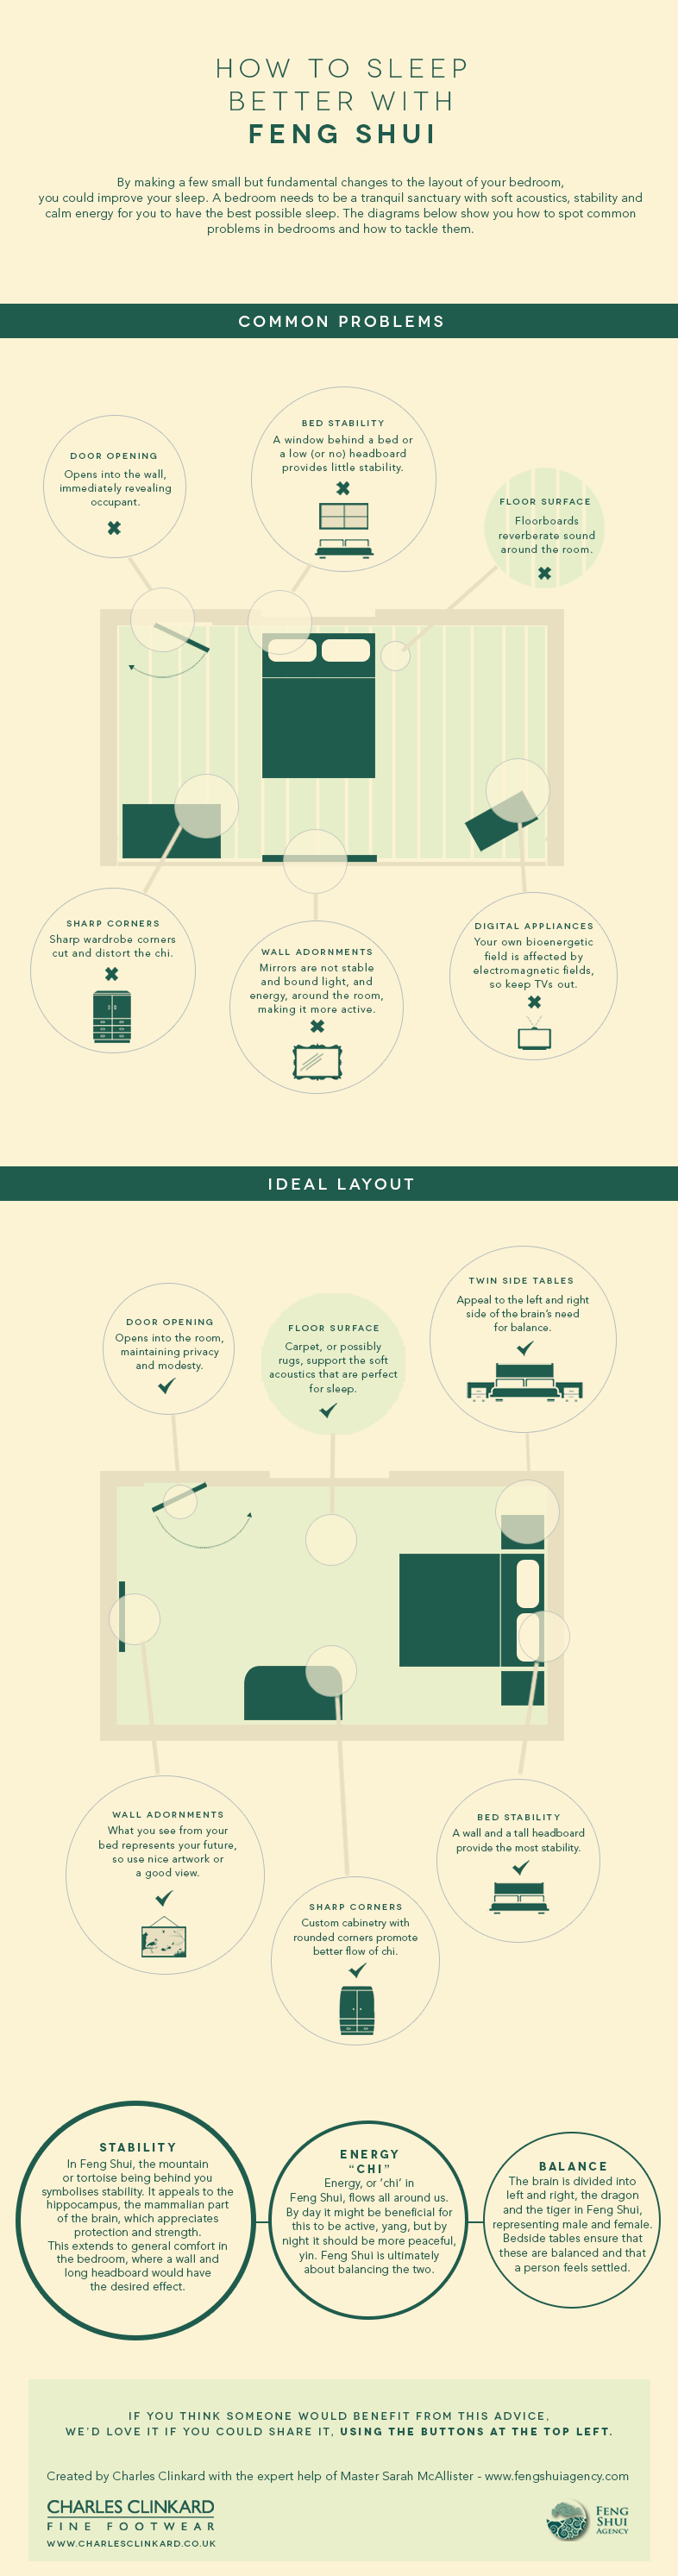 Cool How To Sleep Better With Feng Shui | Home Sweet Home | Pinterest regarding Luxury Feng Shui Small Bedroom Layout